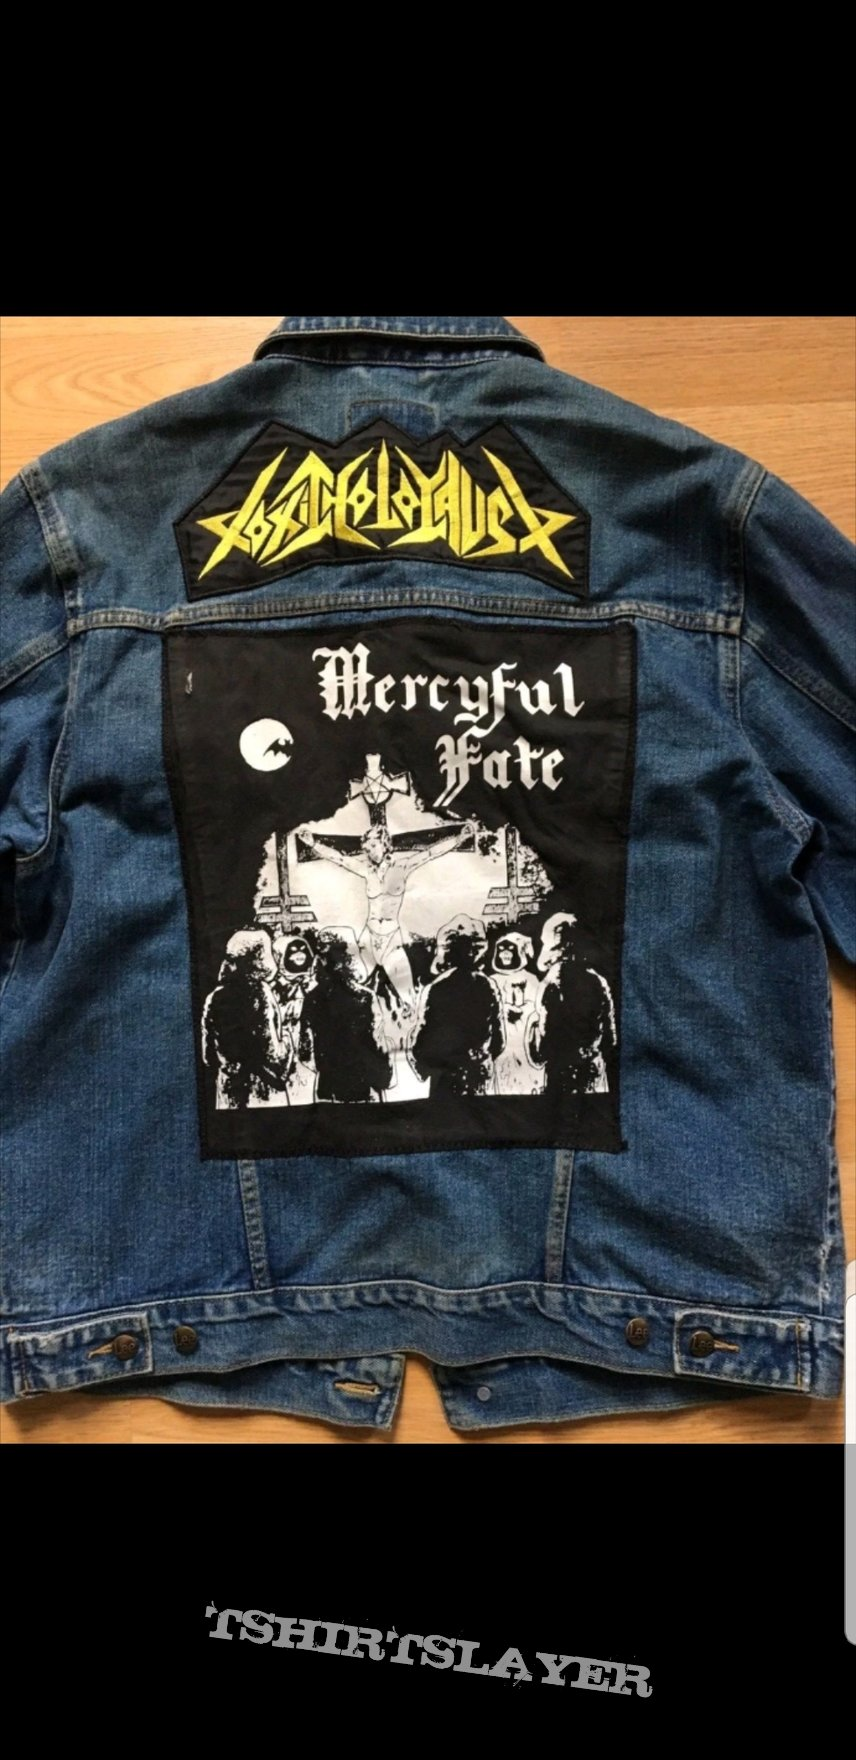 Mercyful fate jean jacket